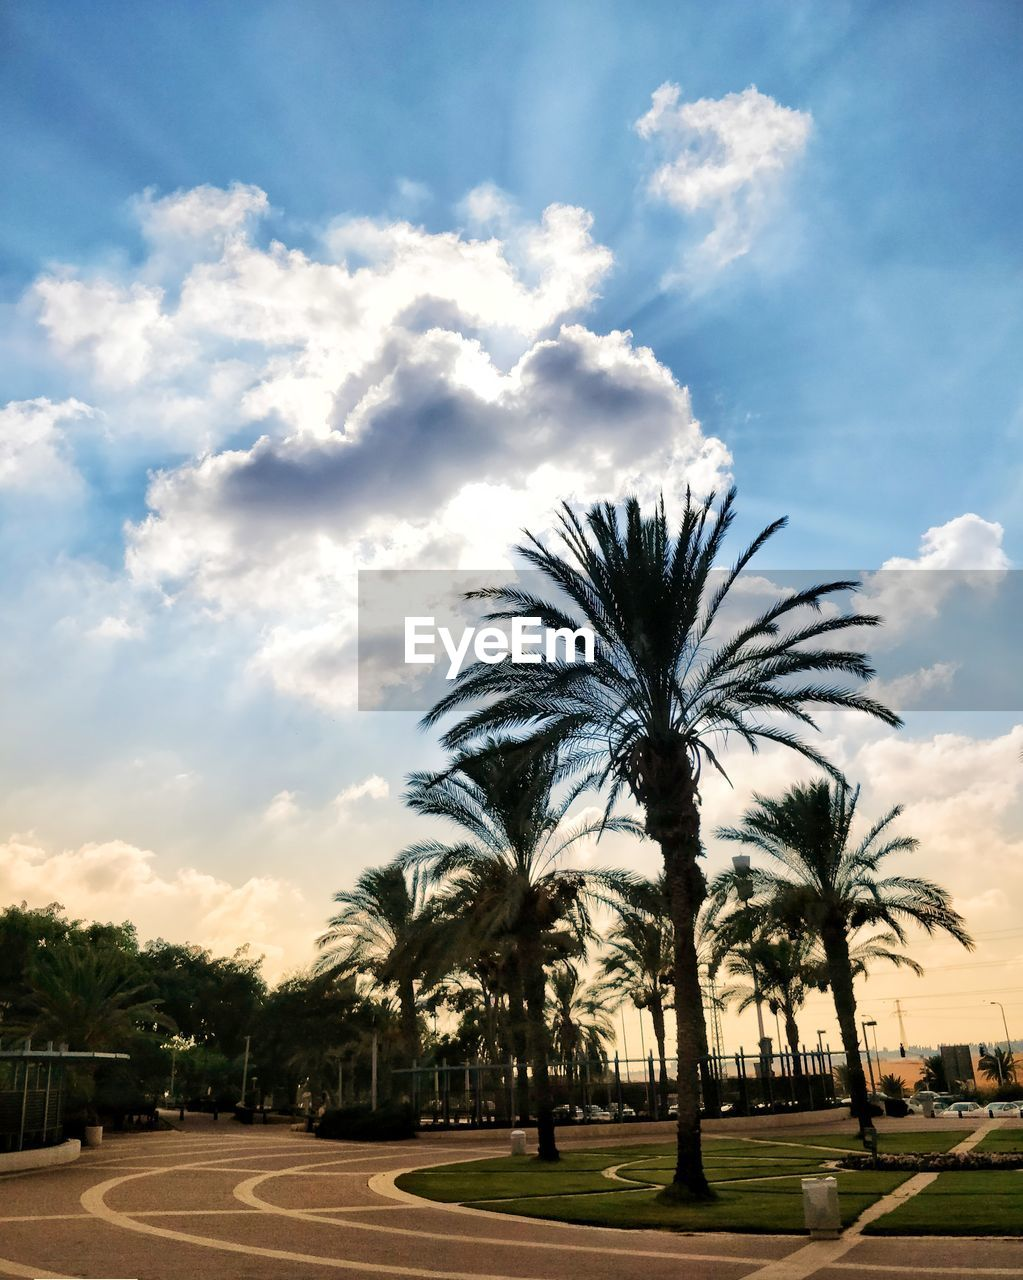 cloud - sky, palm tree, tree, sky, tropical climate, plant, nature, no people, road, growth, beauty in nature, transportation, outdoors, scenics - nature, tranquility, street, date palm tree, city, tranquil scene, sunset, tropical tree, treelined, coconut palm tree